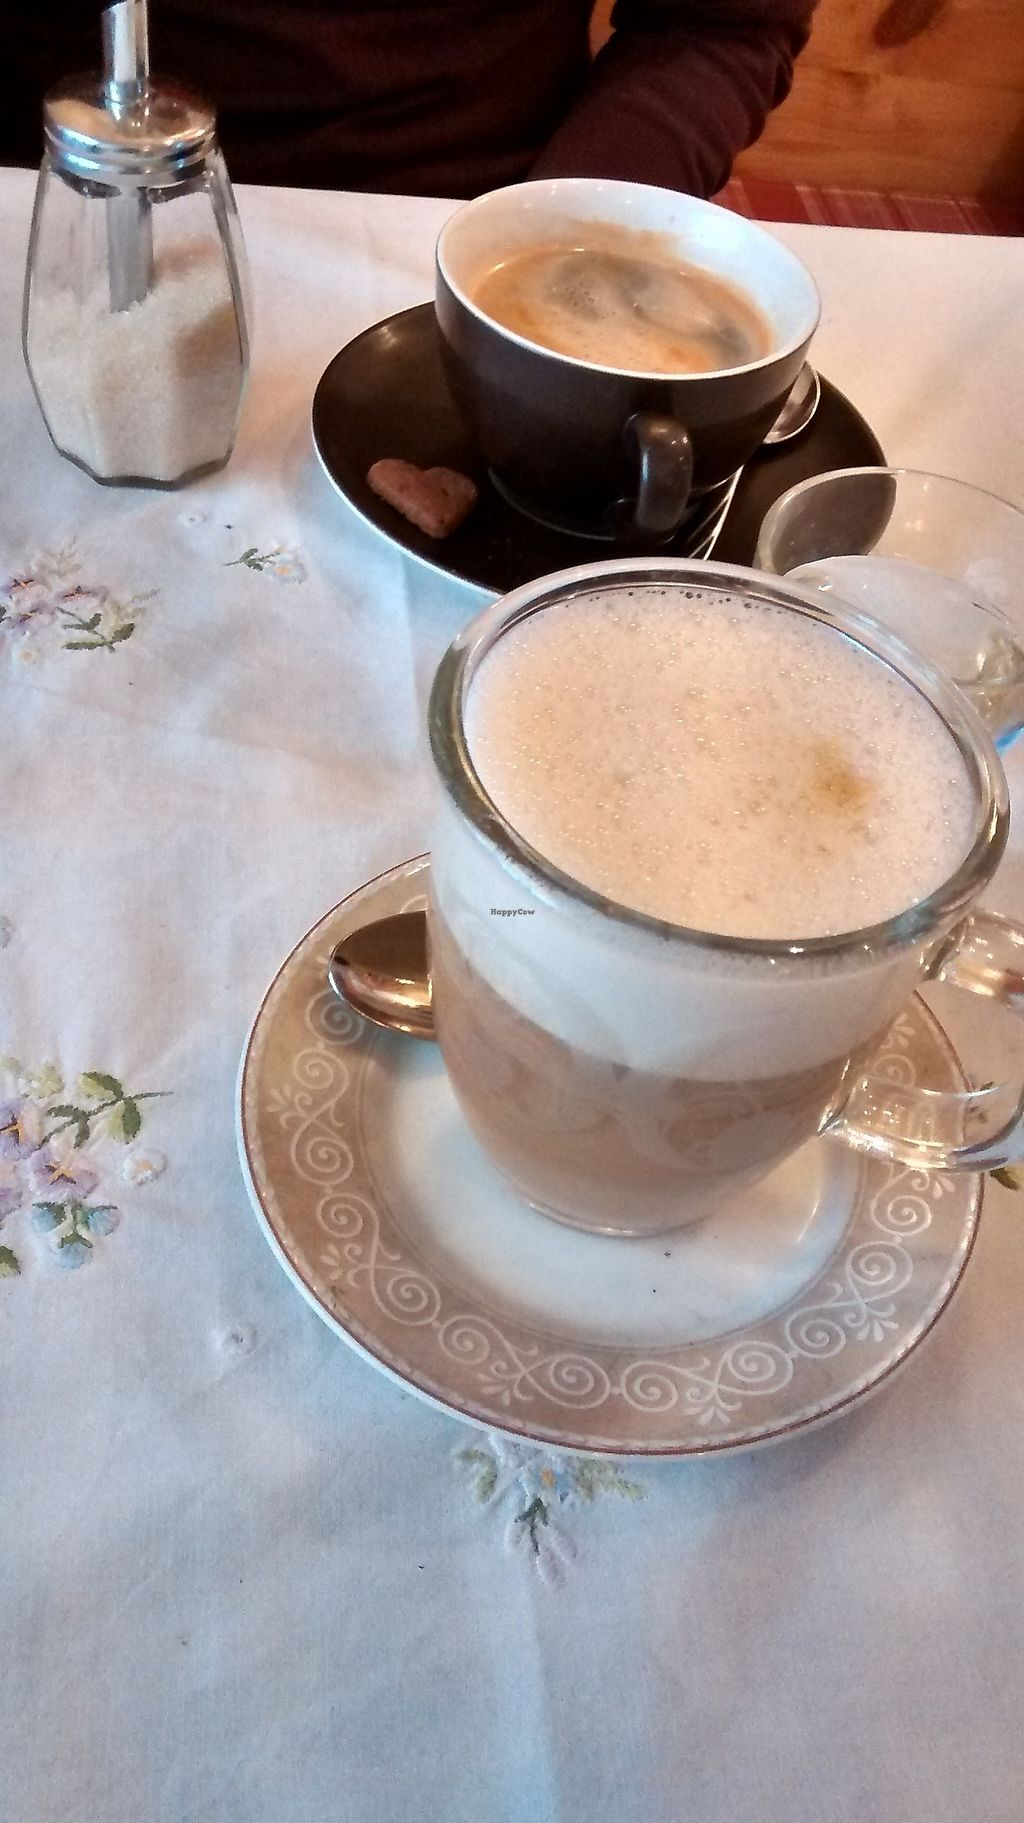 """Photo of Bio Cafe Baumgarten  by <a href=""""/members/profile/SaraC."""">SaraC.</a> <br/>Spicy coffee with oat milk <br/> February 23, 2018  - <a href='/contact/abuse/image/62147/362721'>Report</a>"""